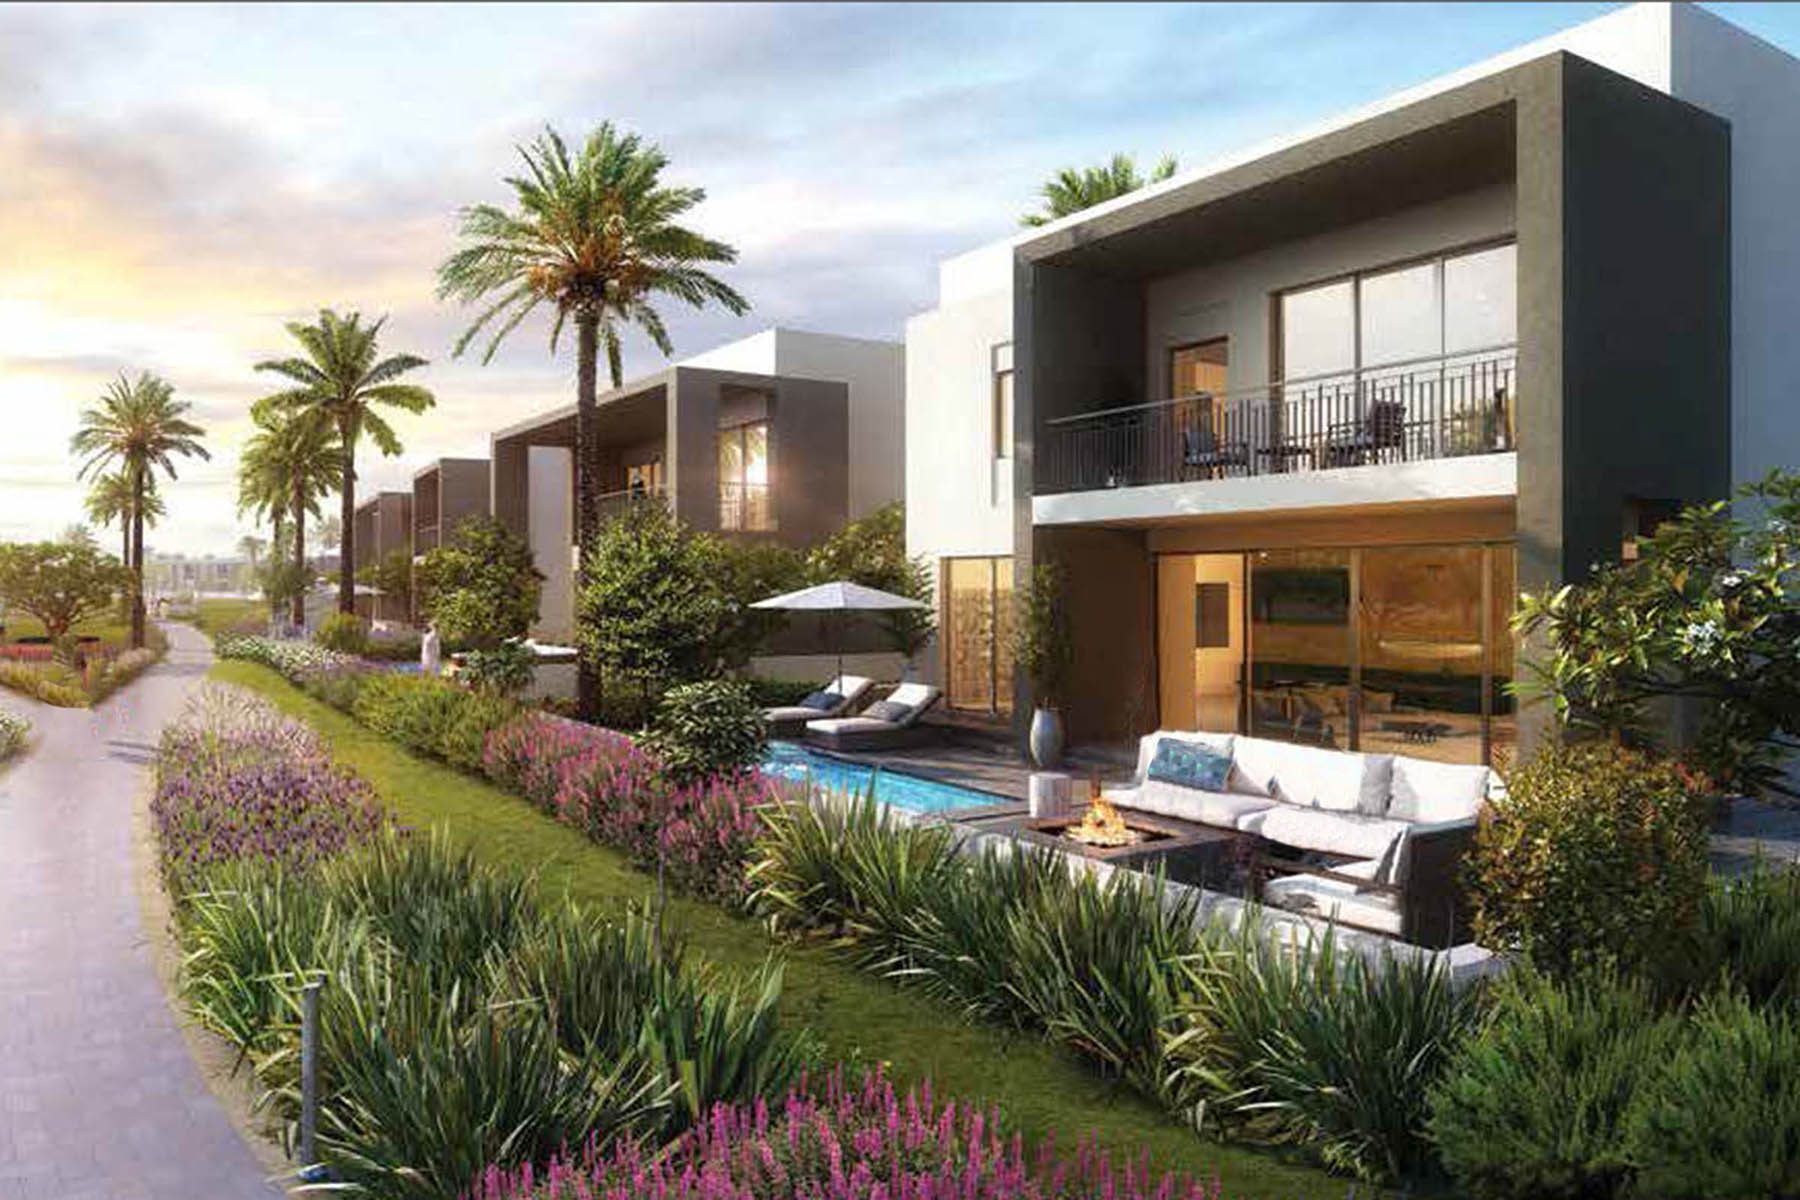 Single Family Home for Sale at 5 Bedroom Sidra 1 Independent Large Plot Dubai Hills Estate Sidra Villas, Dubai, 00000 United Arab Emirates